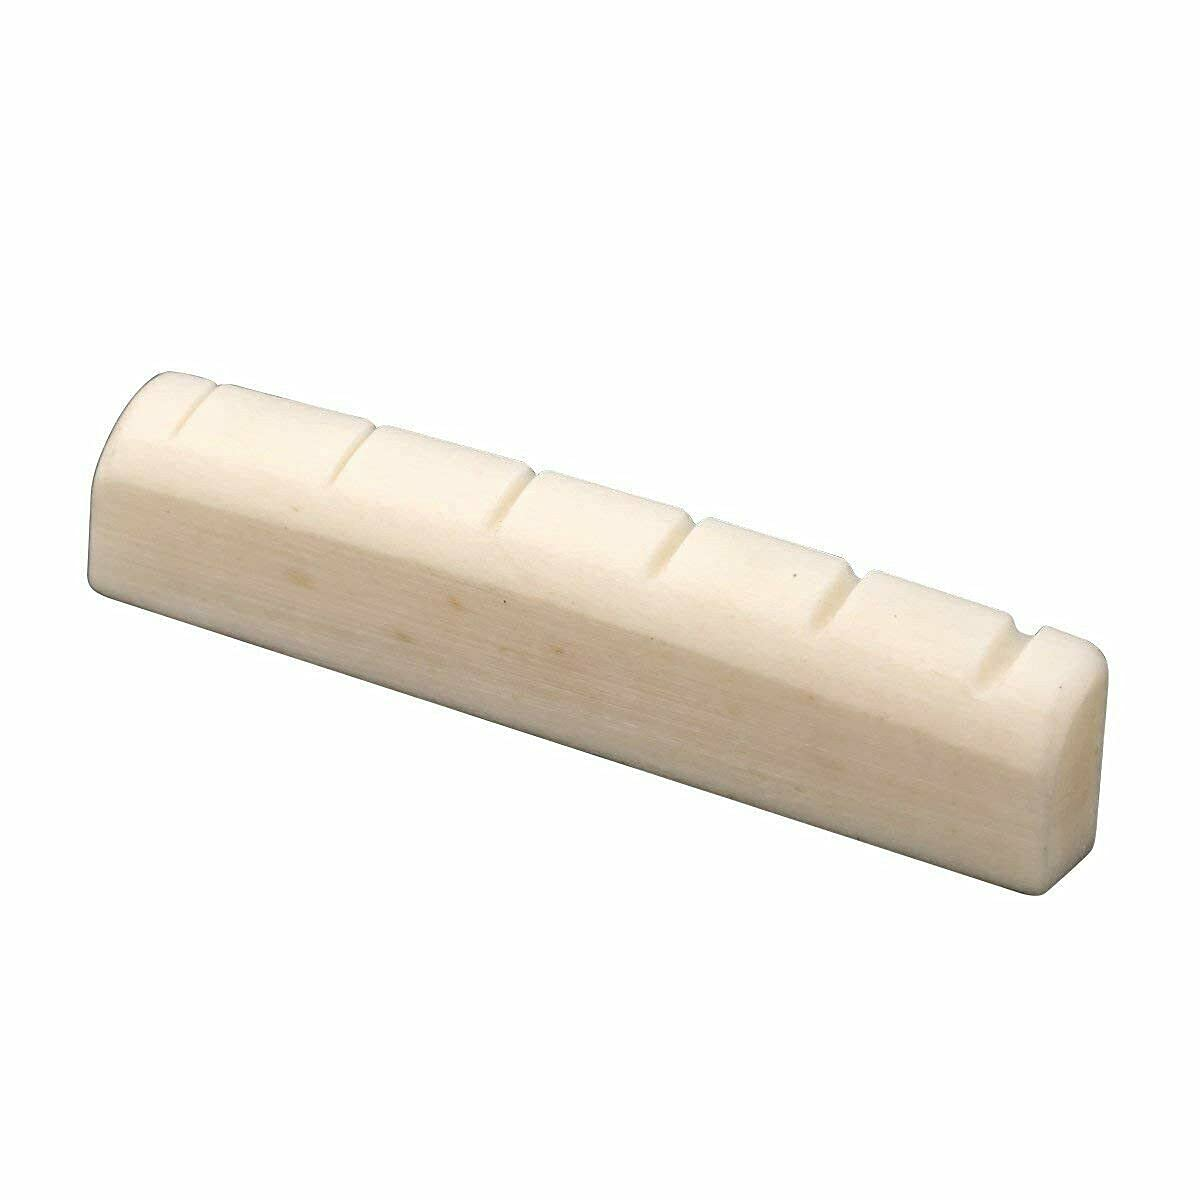 Guitar Parts for Standard LP Max 62% OFF Style Max 79% OFF Bottom Flat Pre Slotted B